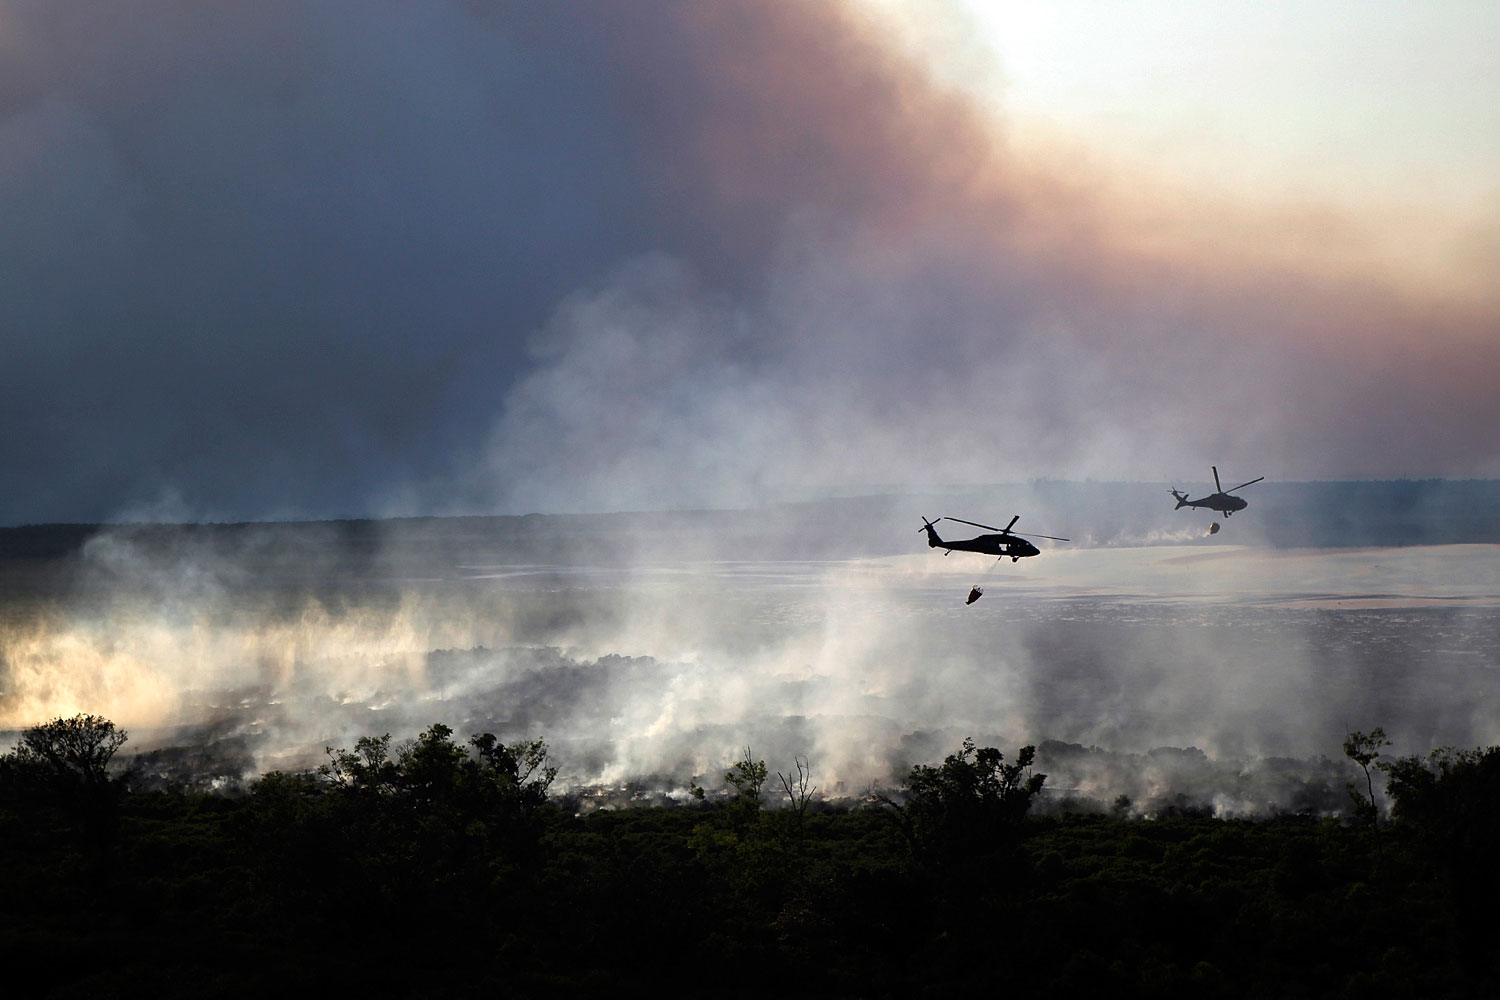 August 30, 2011. National Guard Blackhawk helicopters equipped with Bambi buckets drop water on the marsh fire in New Orleans East.